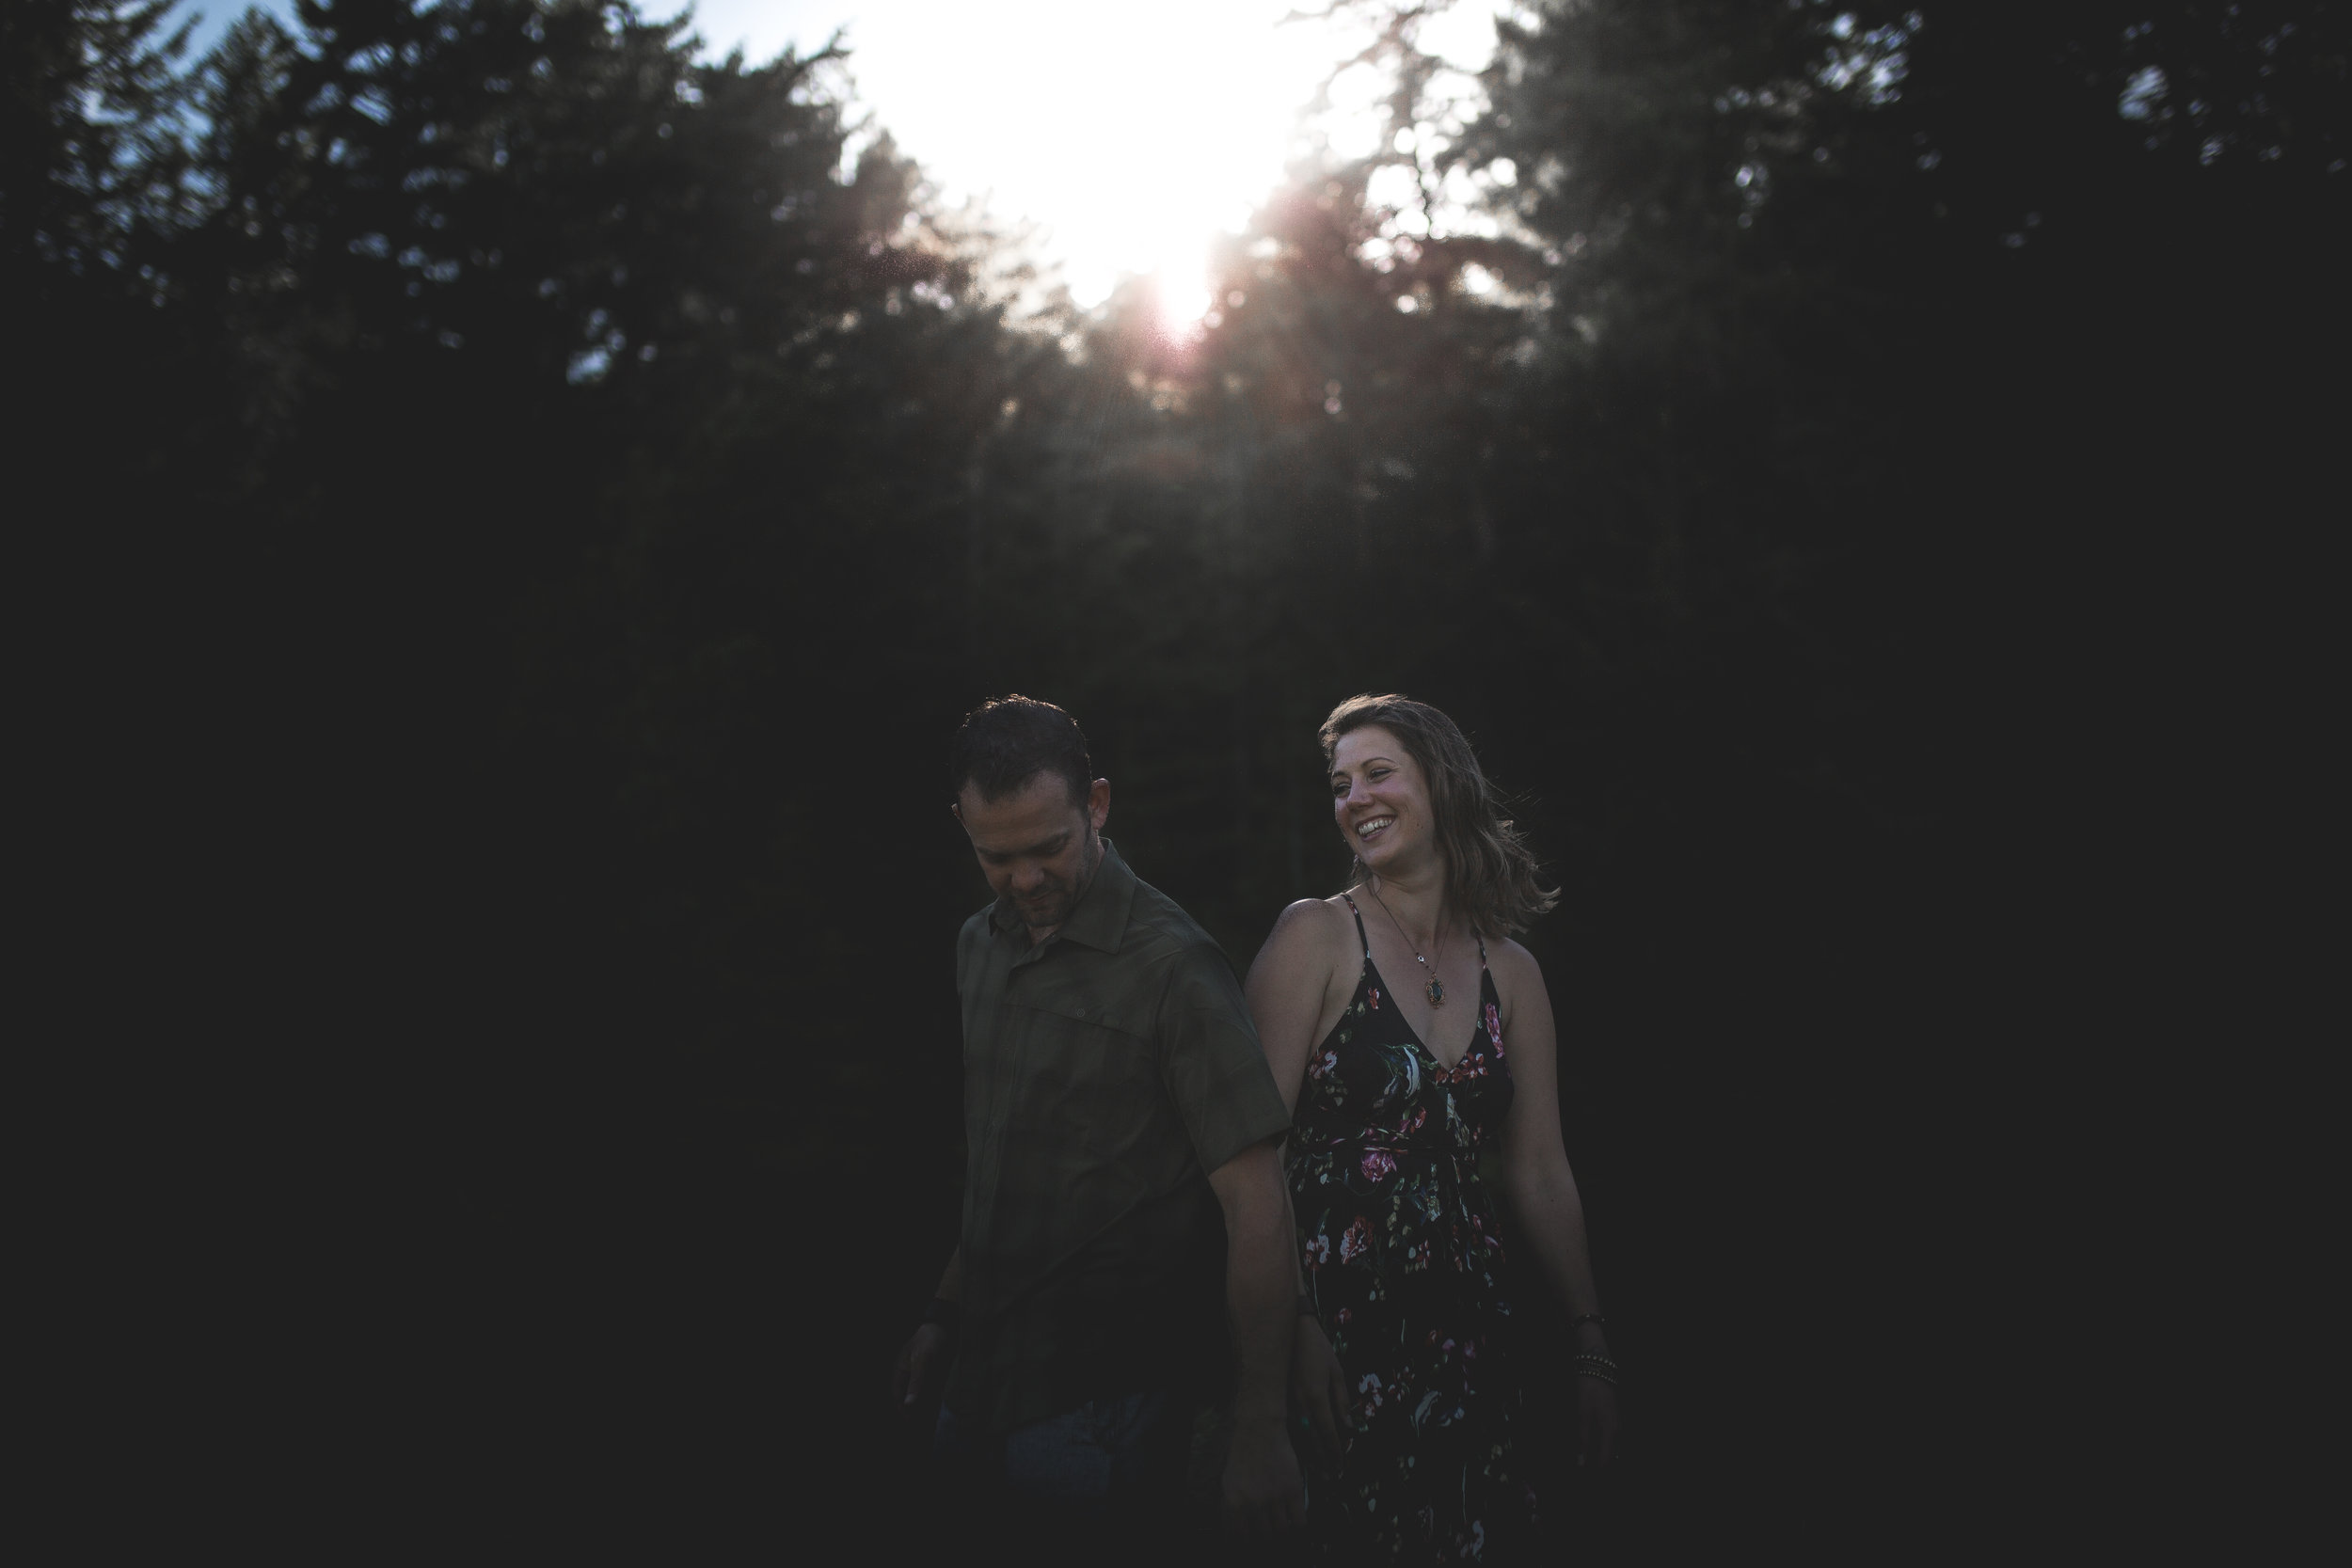 64-Adam-Ziorio-Photography-Engagement-Hangoutsession-East-Sooke-Park-Victoria-BC-Telsa&Willy.jpg